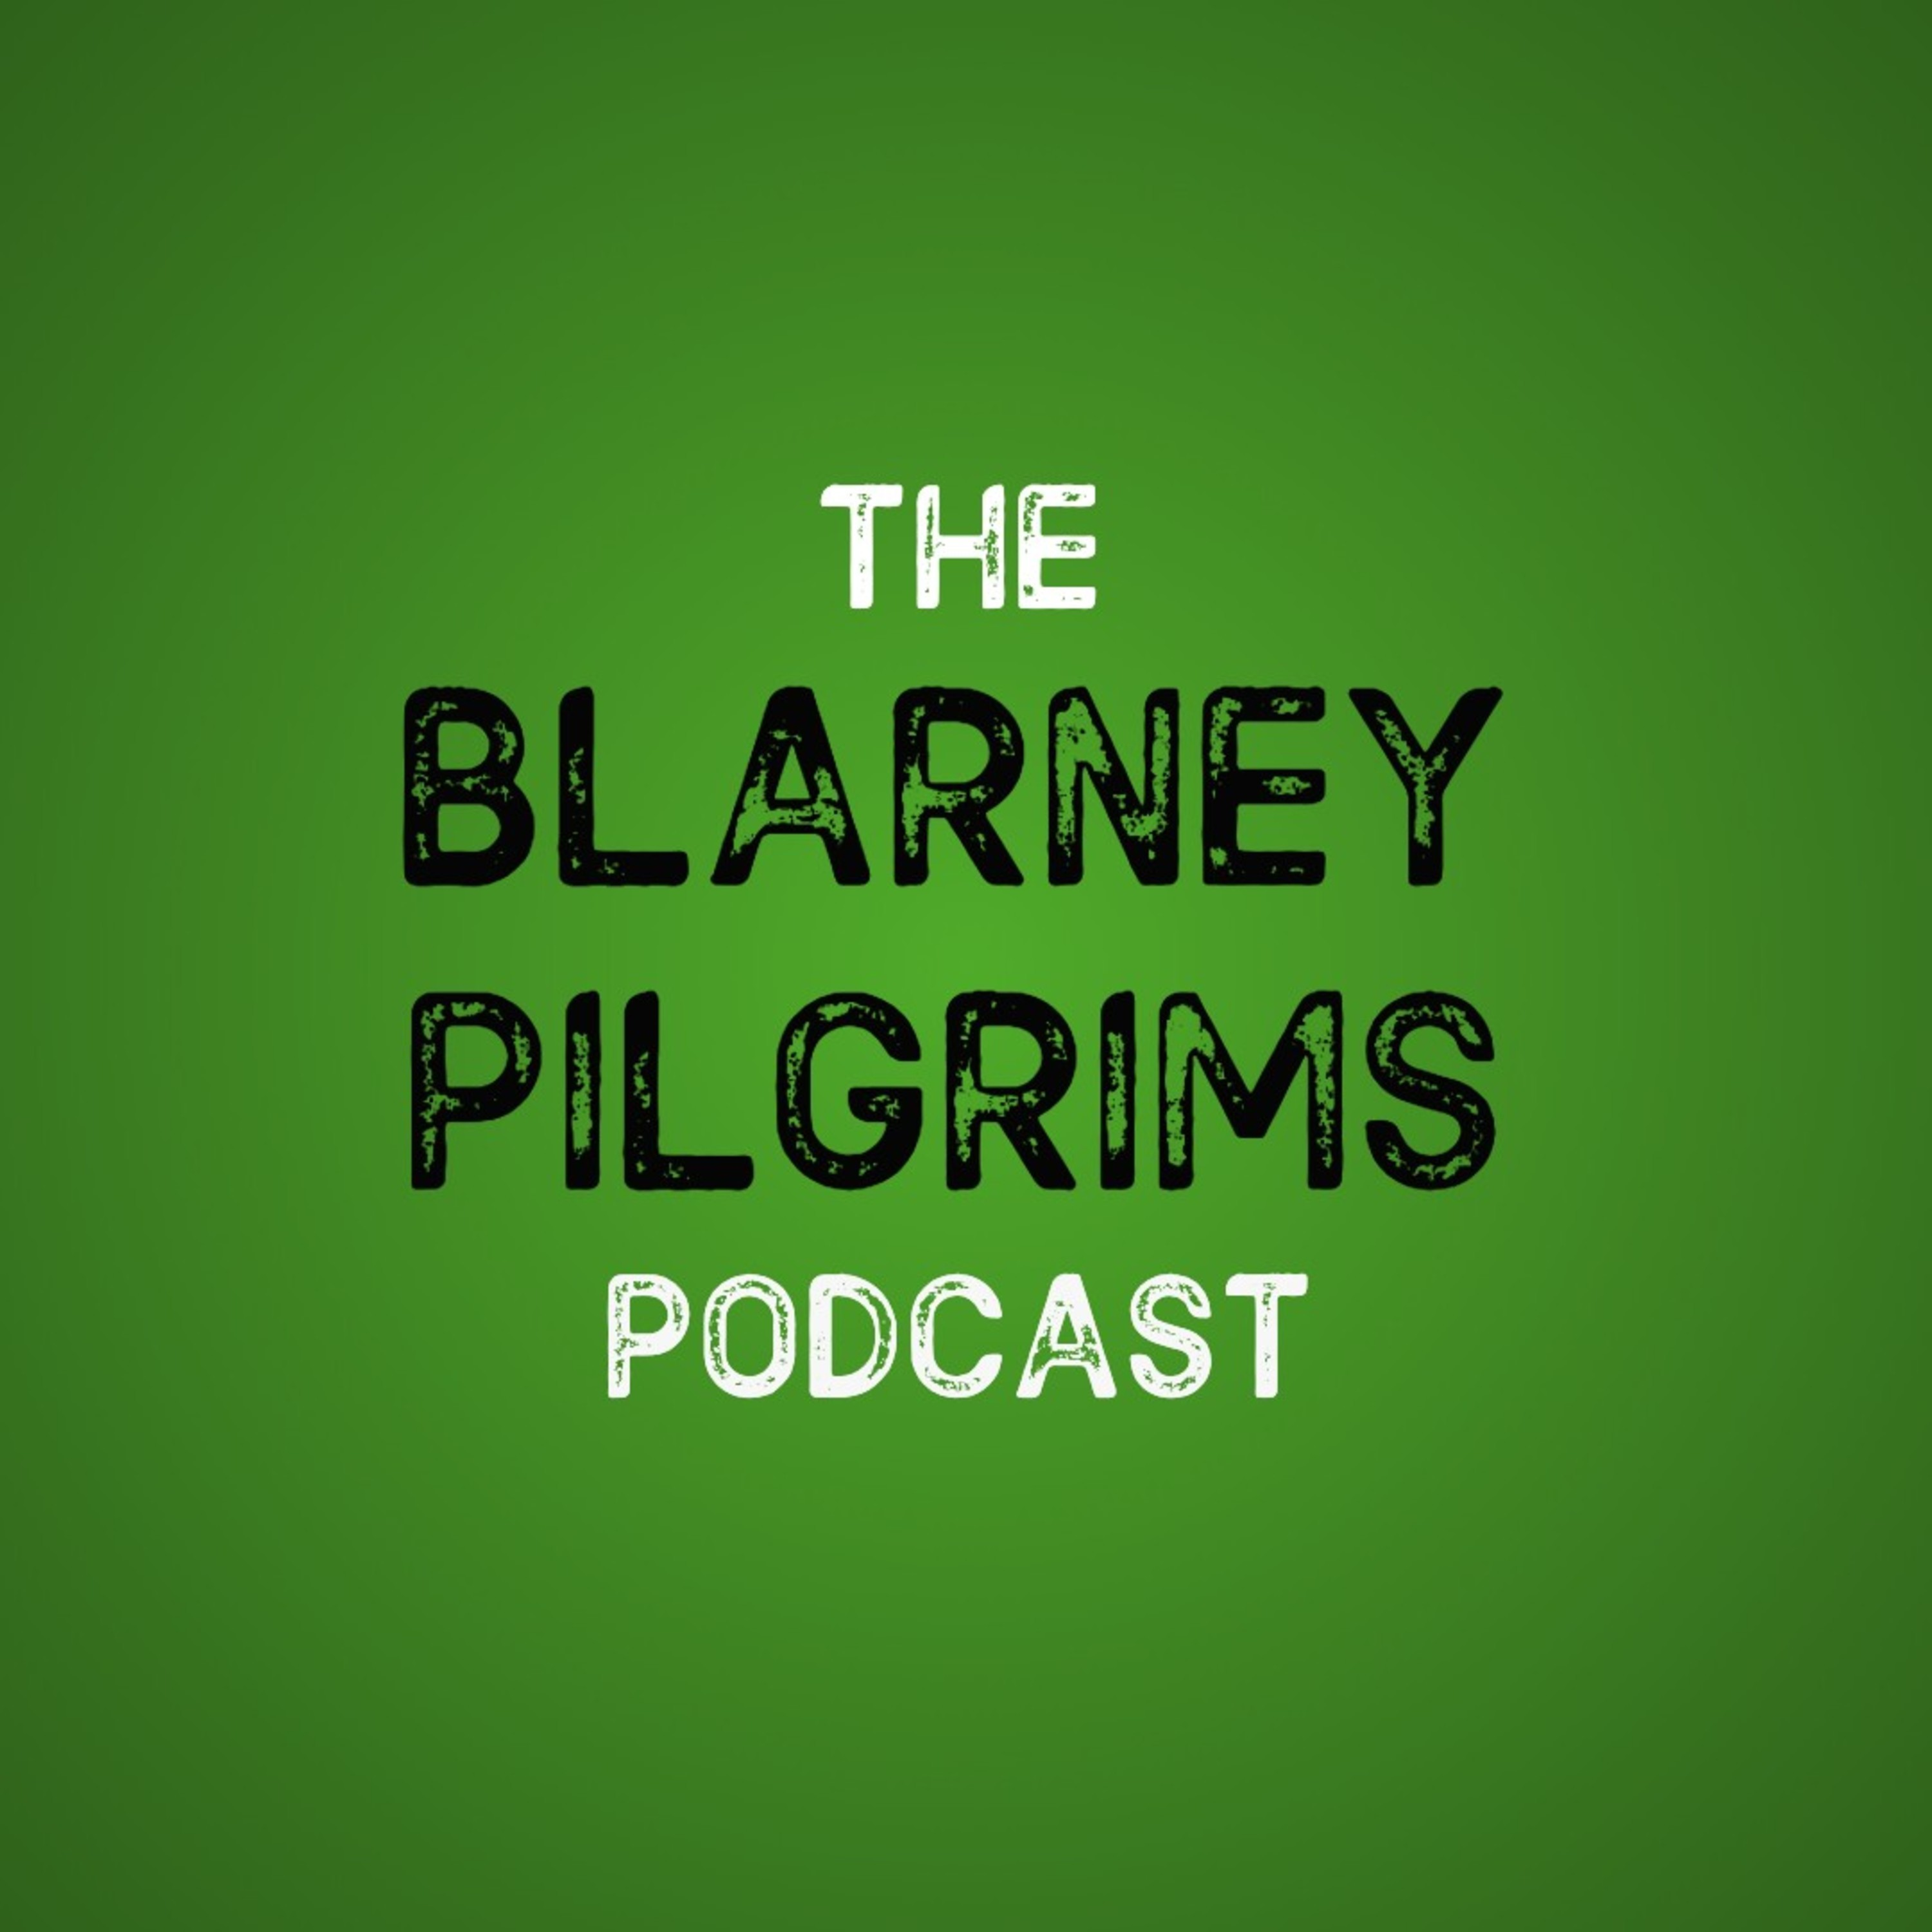 Episode 14: Paddy Fitzgerald Interview (Accordion, Lilting) - The Blarney Pilgrims Traditional Irish Music Podcast